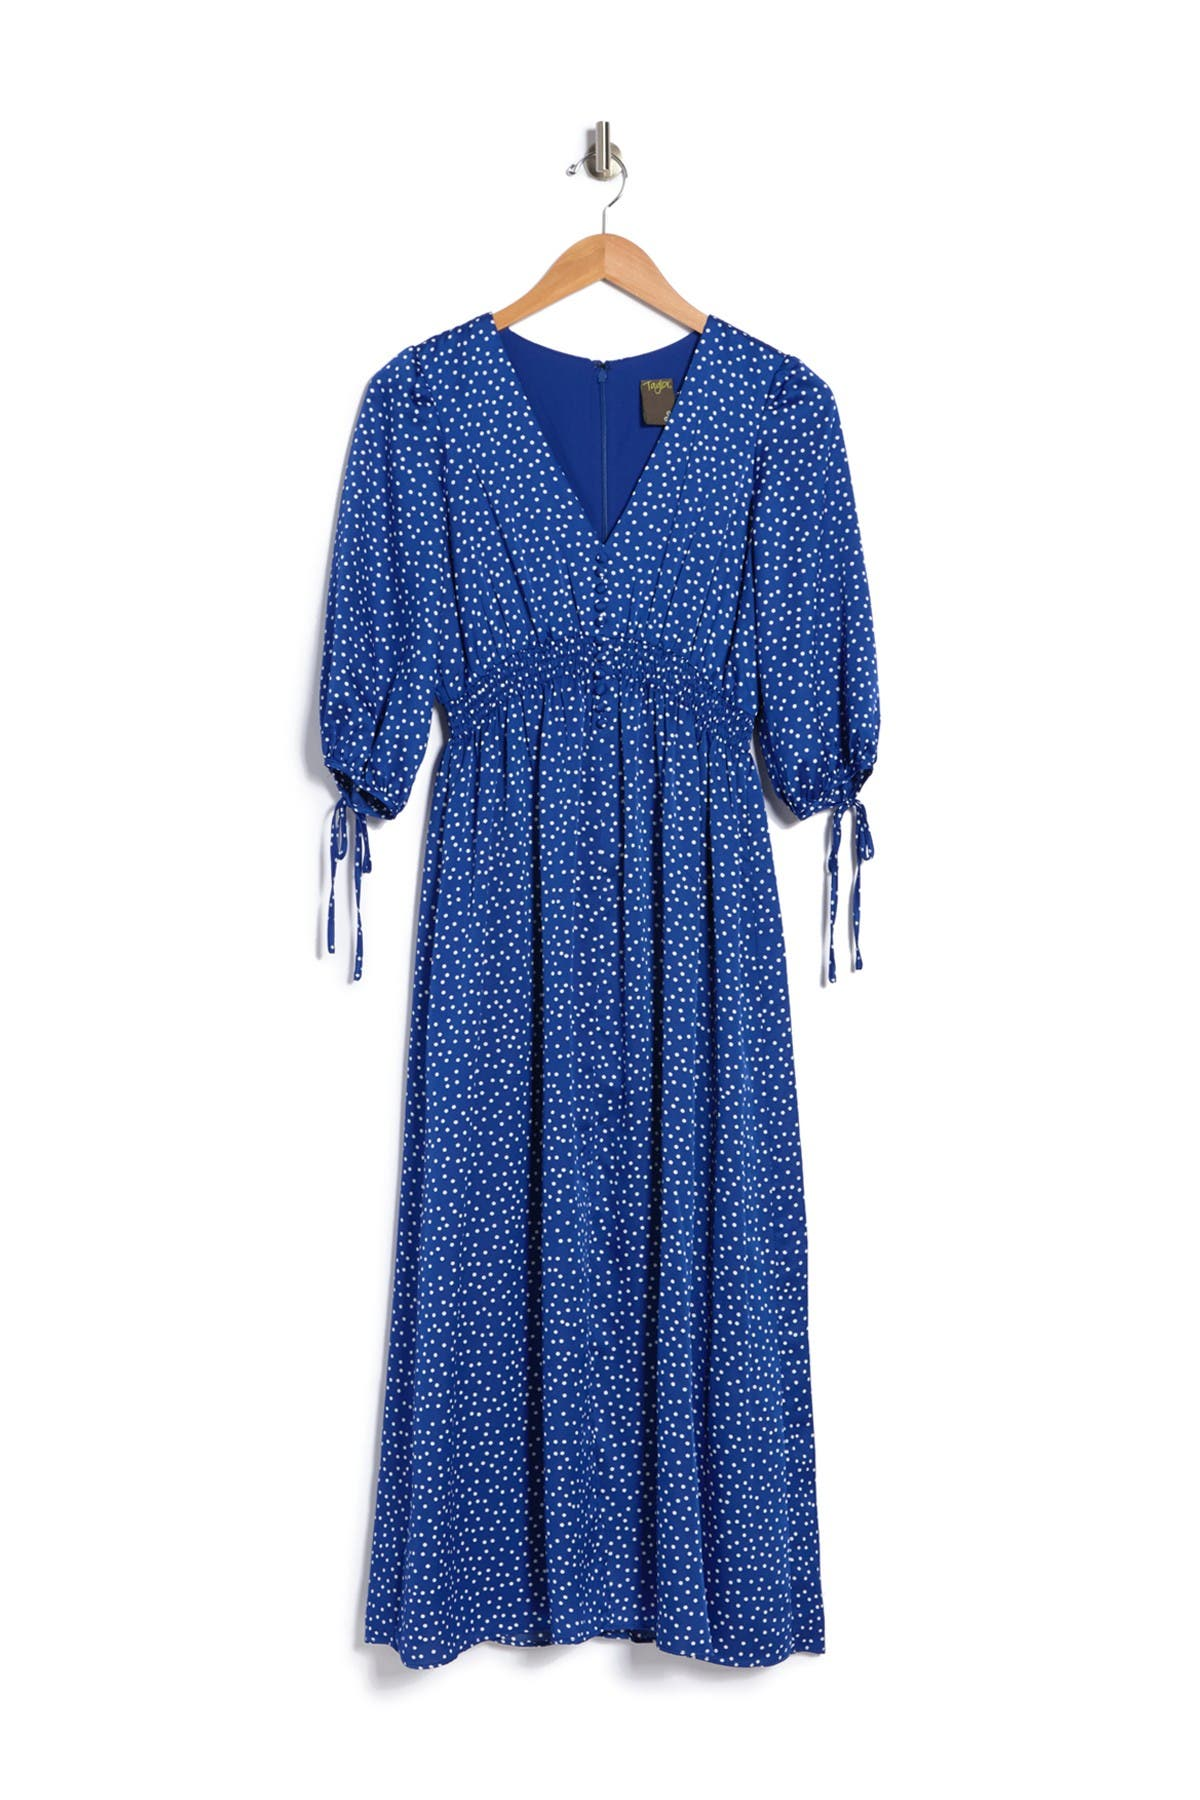 Taylor PRINTED BUTTON FRONT MAXI DRESS